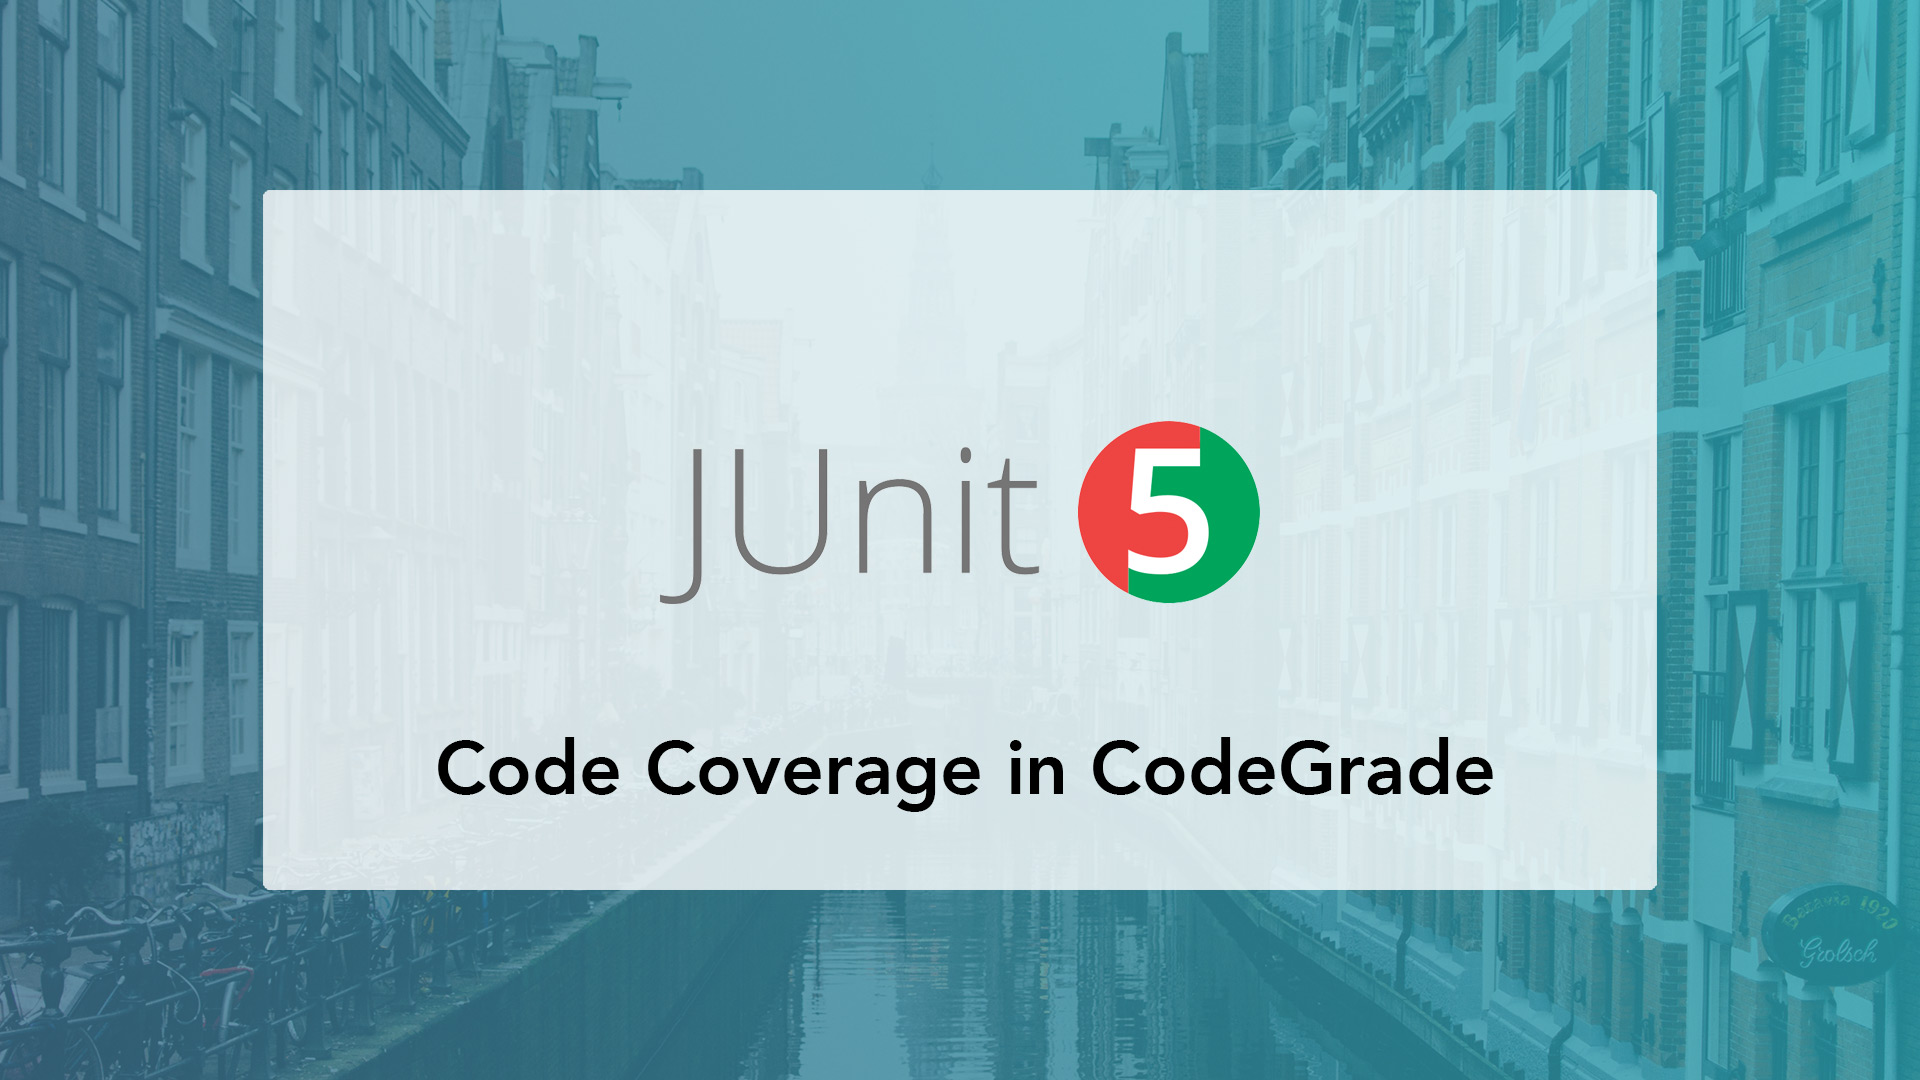 Grading JUnit 5 Java assignments using JaCoCo for computer science education